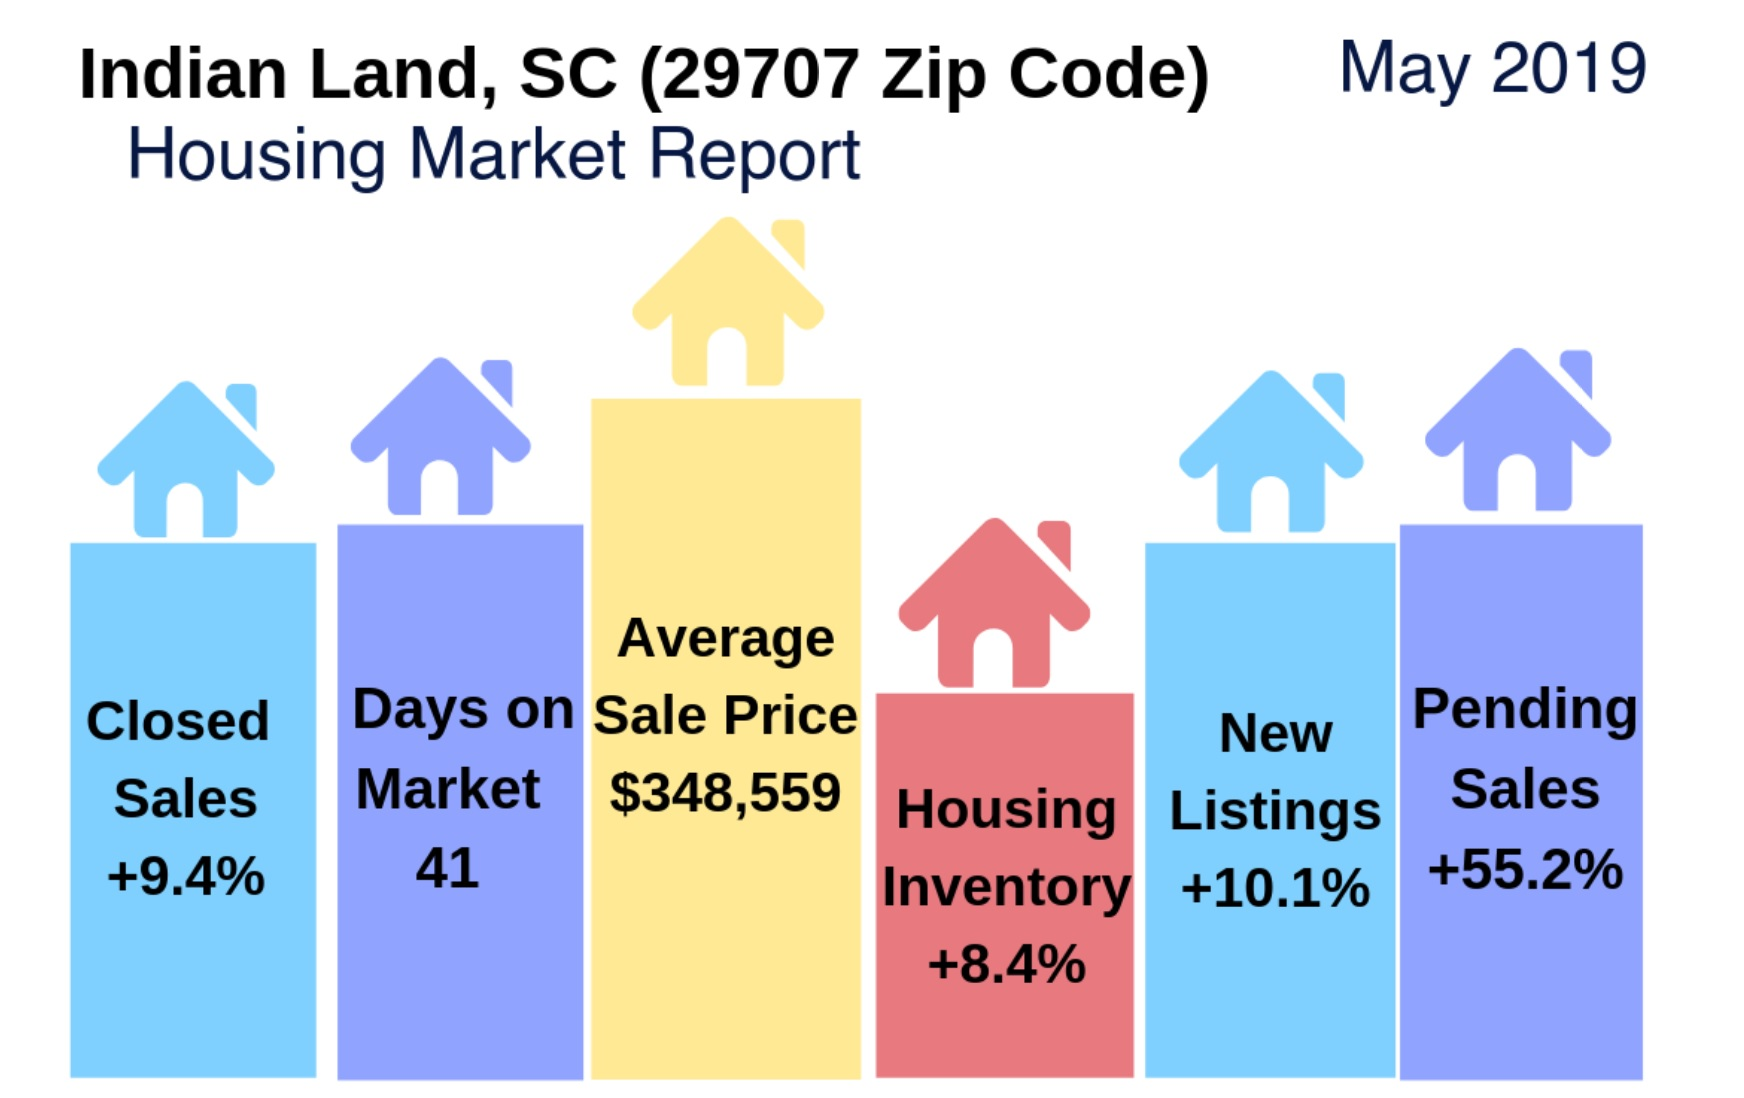 Indian Land, SC (29707) Housing Market Update & Video: May 2019